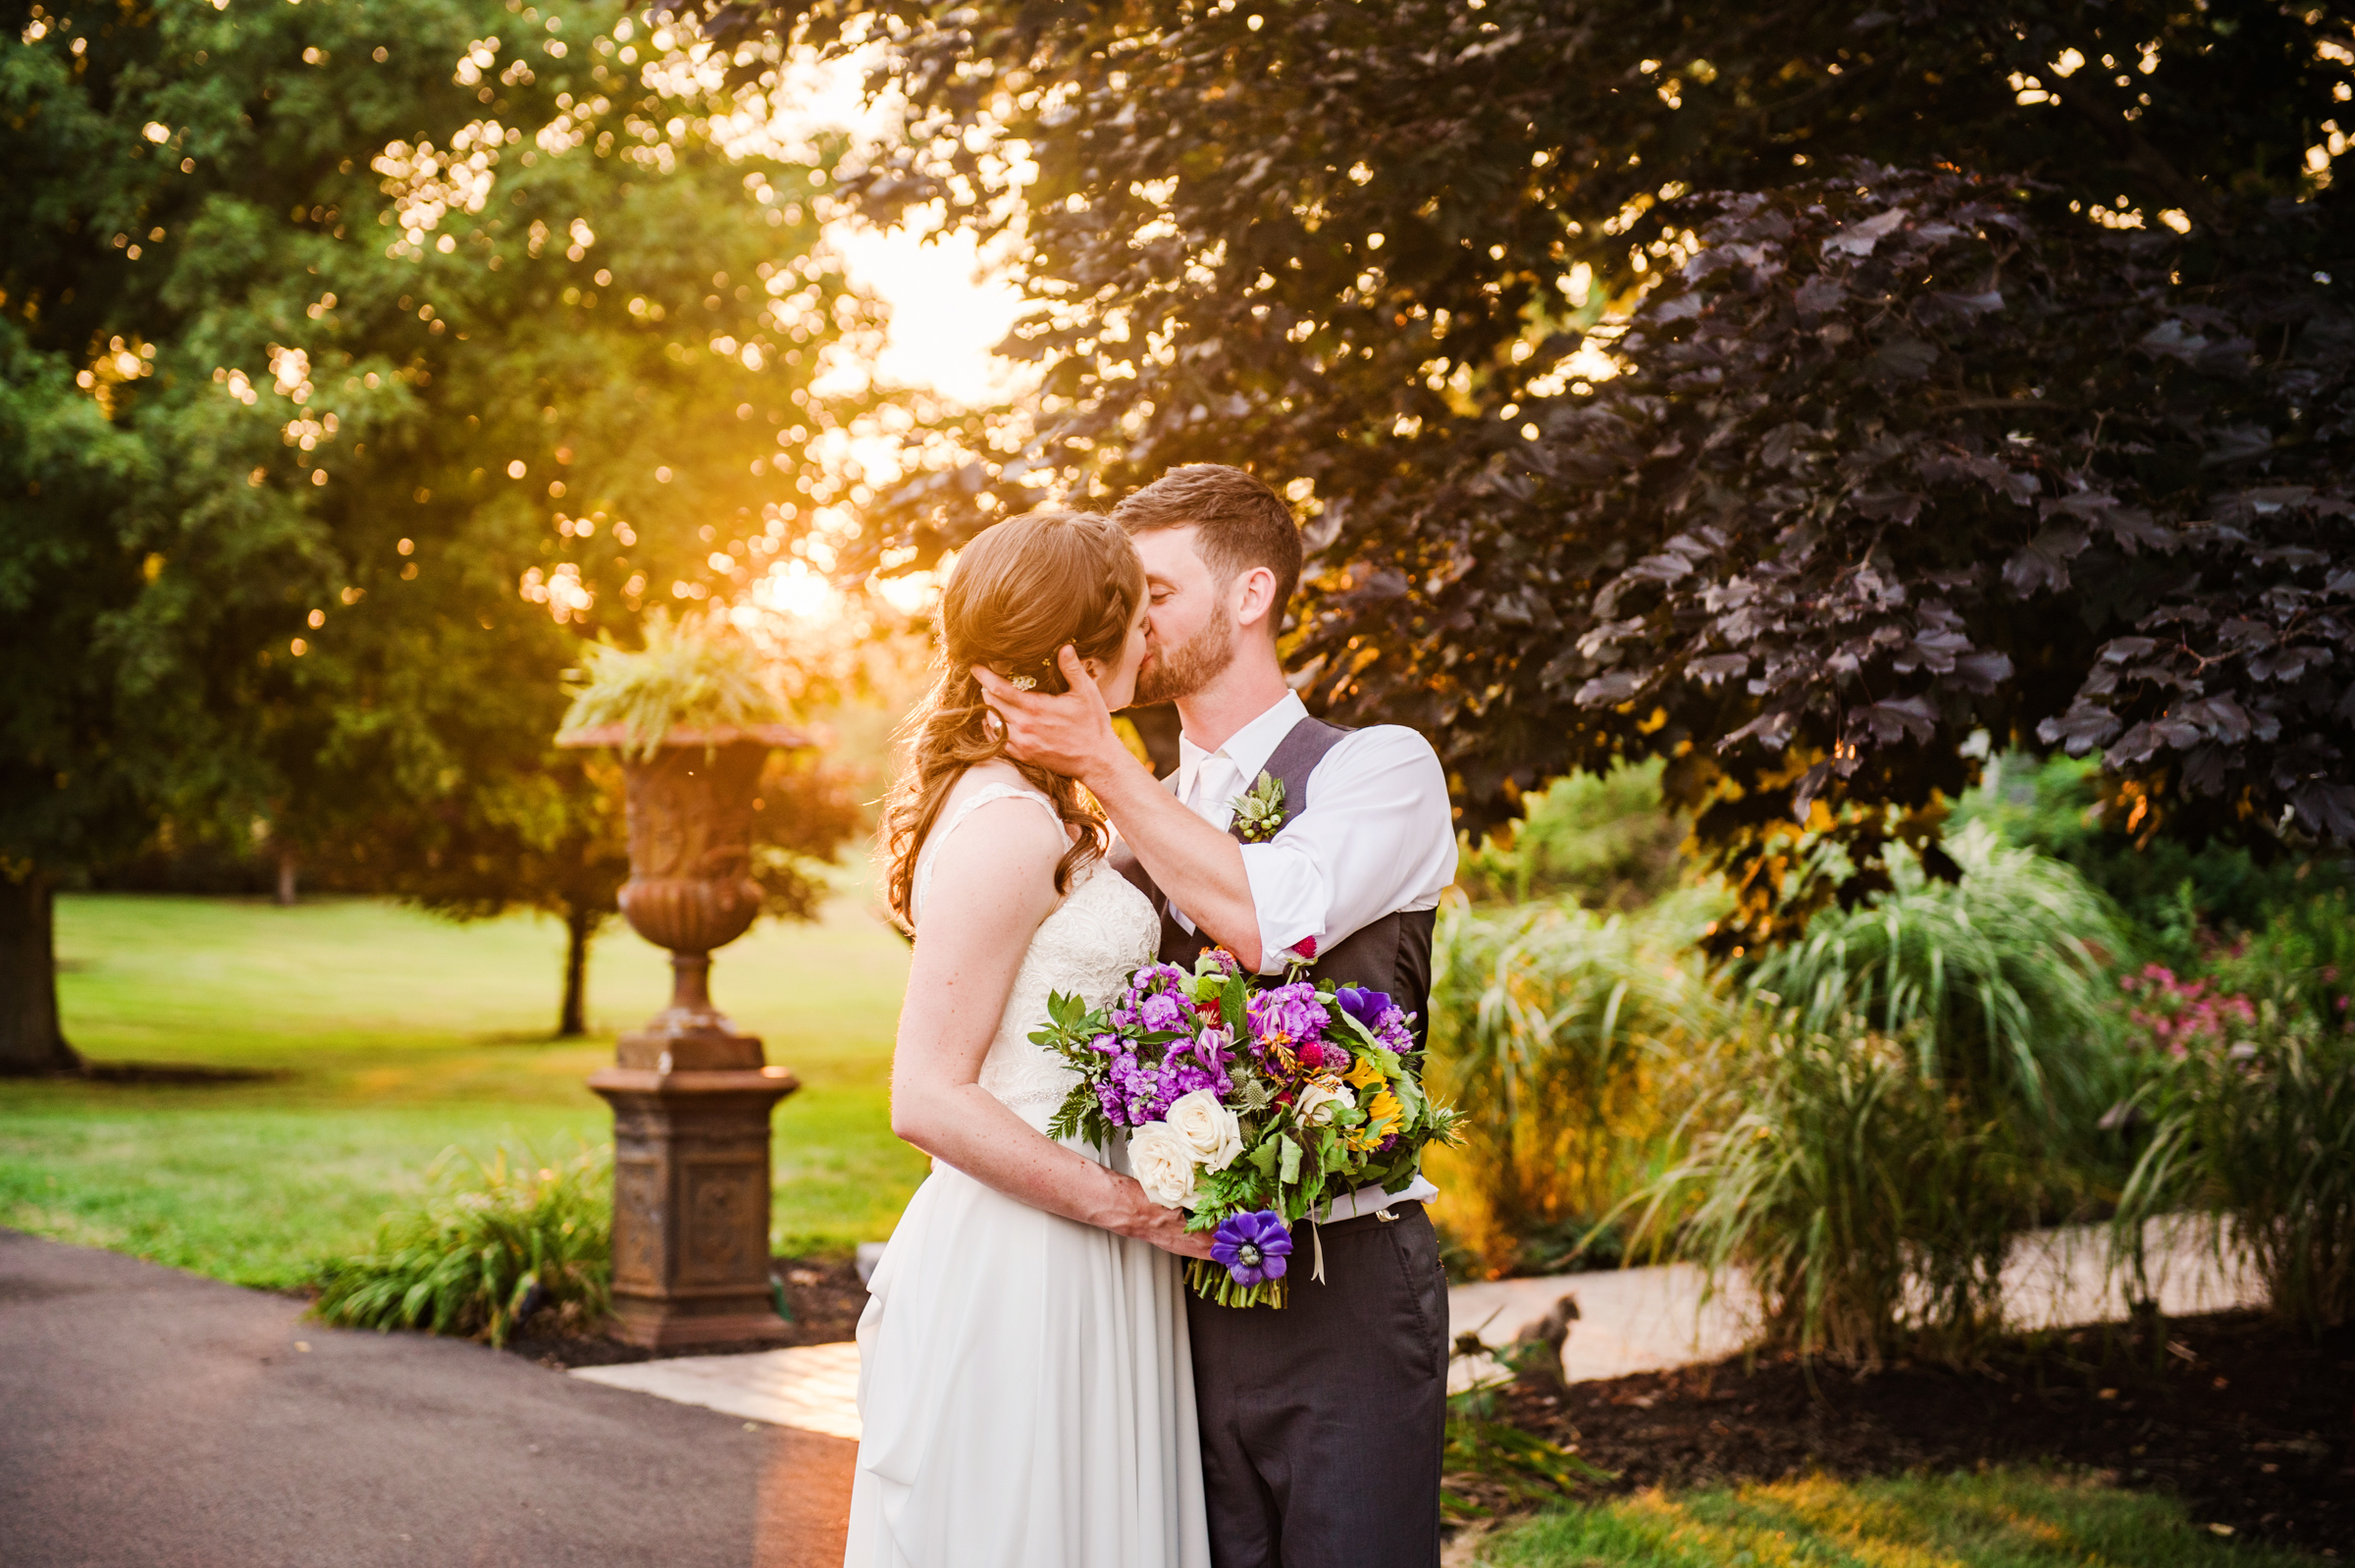 JILL_STUDIO_Wedding_JILL_STUDIO_Rochester_NY_Photographer_14-DSC_3071.jpg